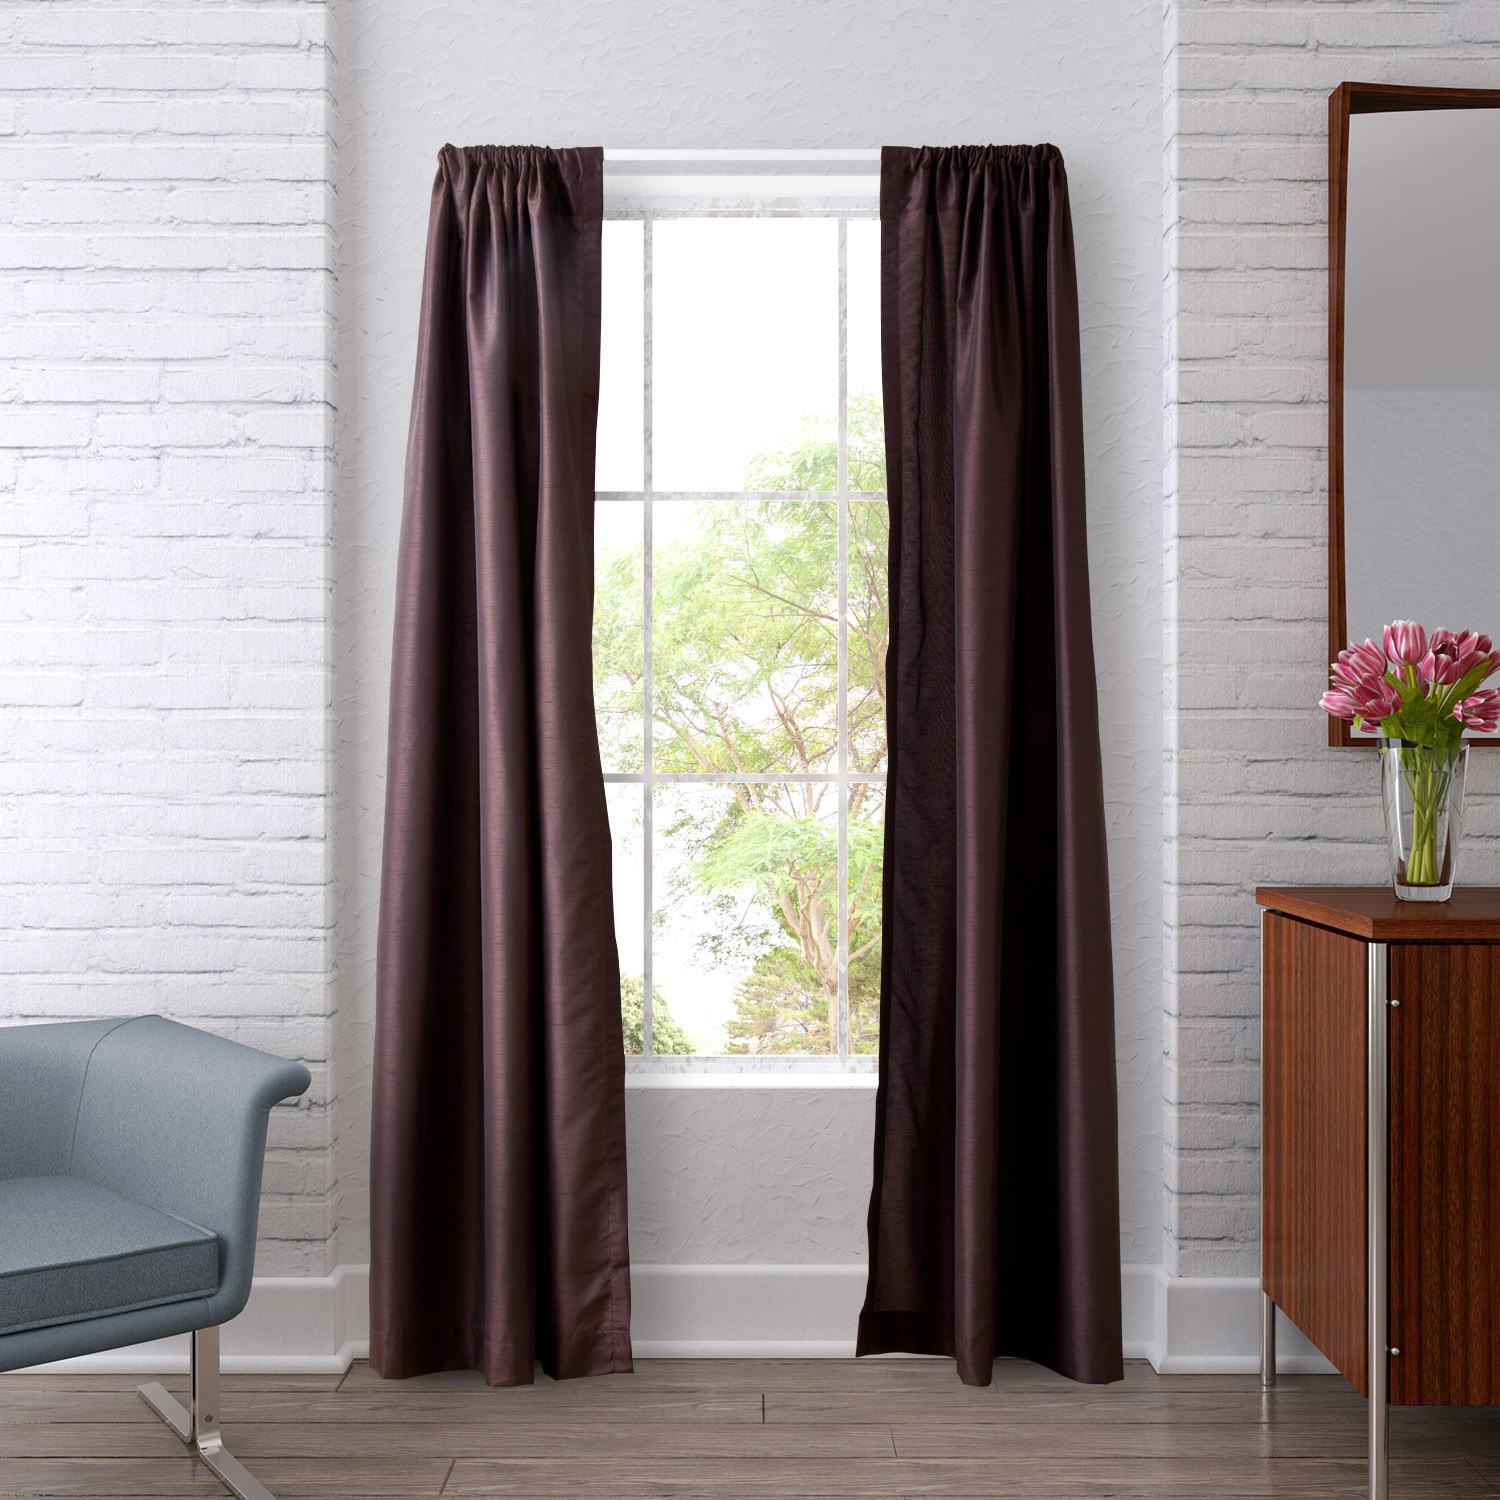 Stylish Heritage Landing Lined Window Curtain Panels window curtain panels